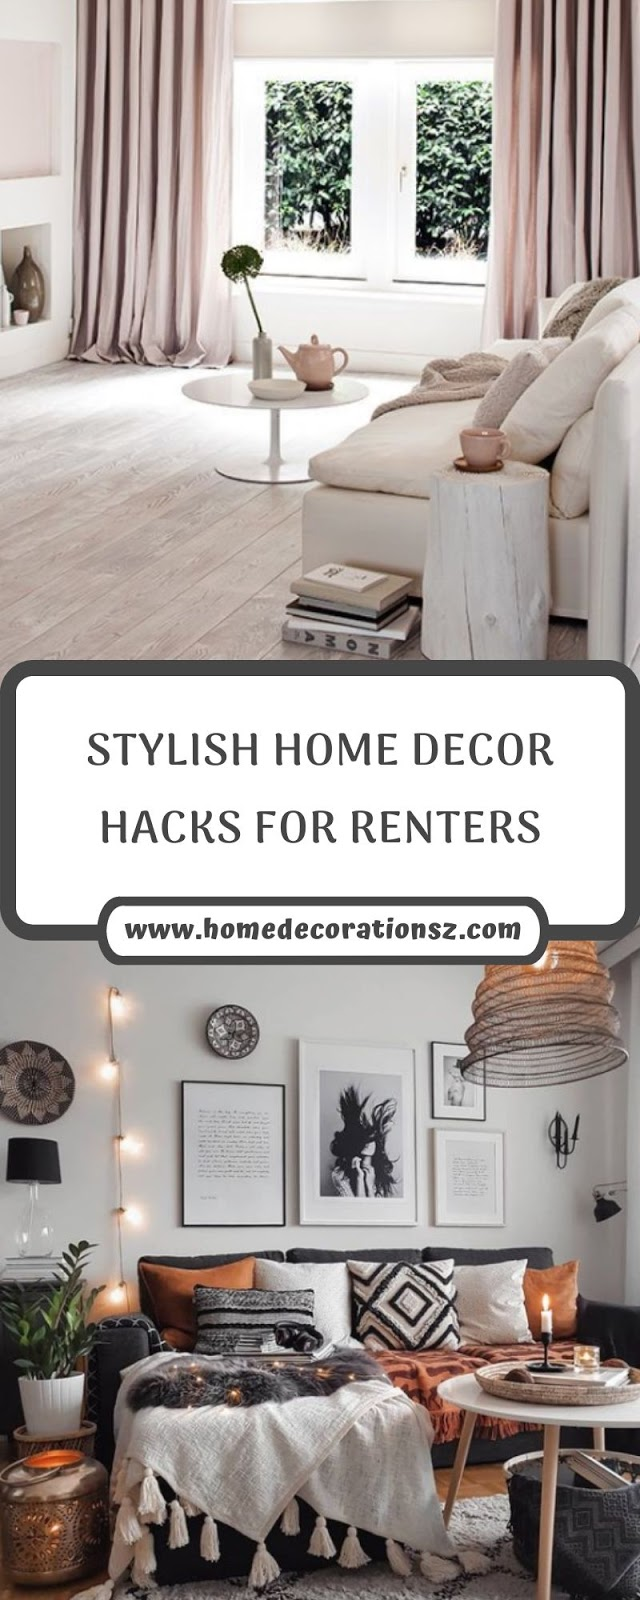 STYLISH HOME DECOR HACKS FOR RENTERS